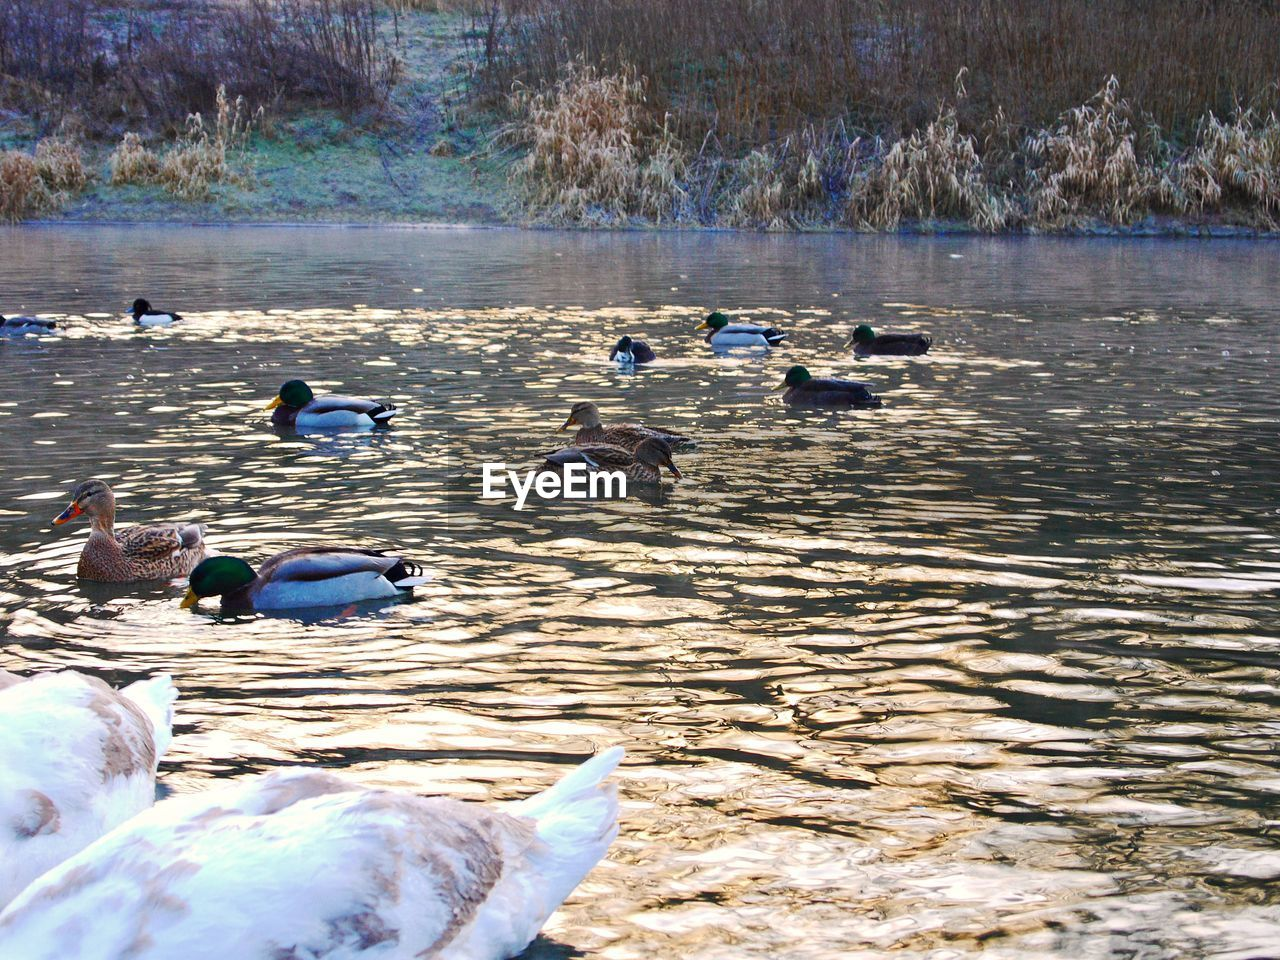 Swans and ducks swimming in lake during winter